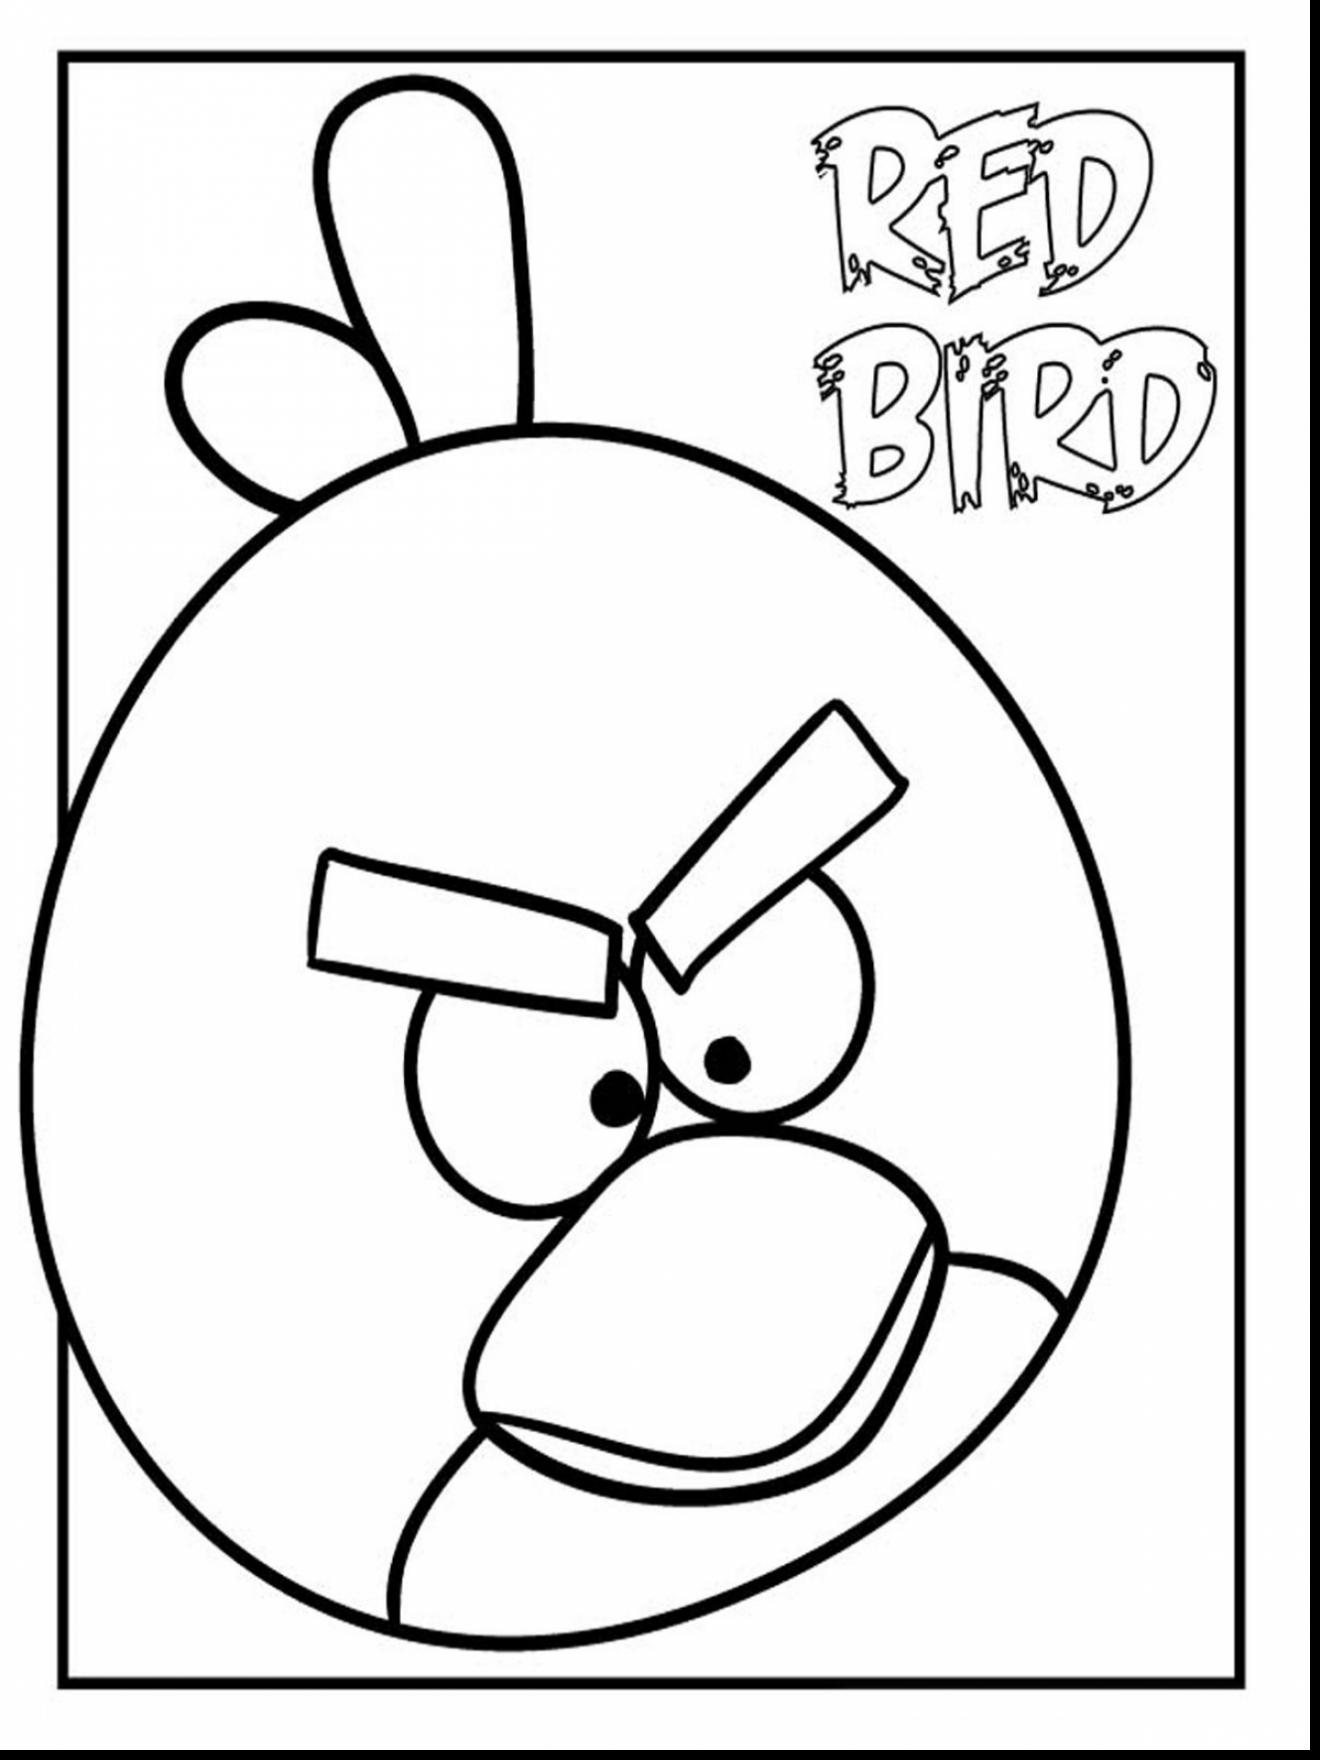 1320x1760 Spectacular Red Angry Bird Coloring Pages With Birds Coloring